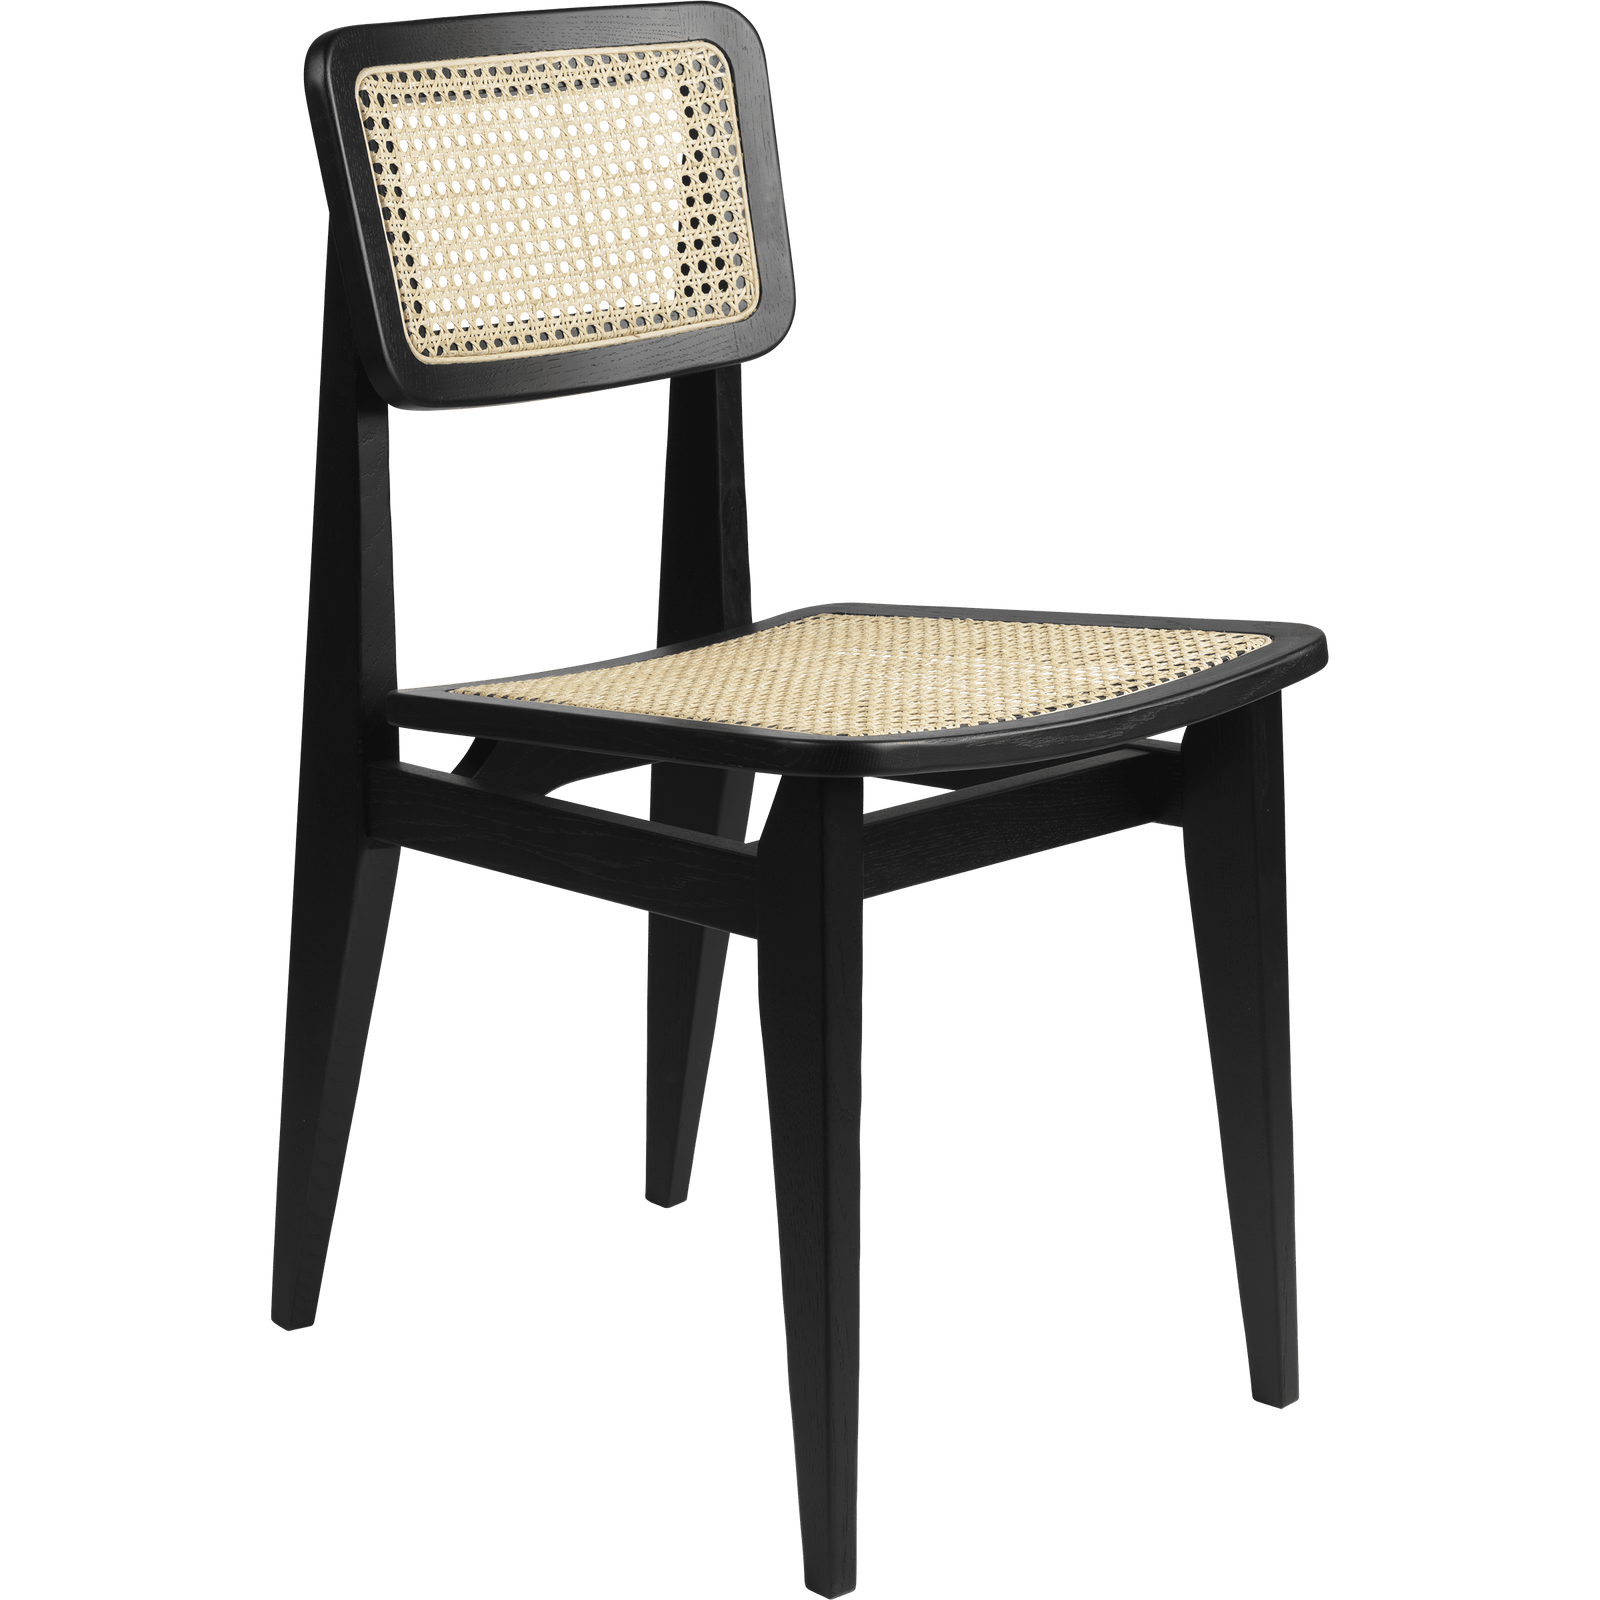 Gubi Furniture Matte Lacquered Black Stained Oak C-Chair French Cane Dining Chair